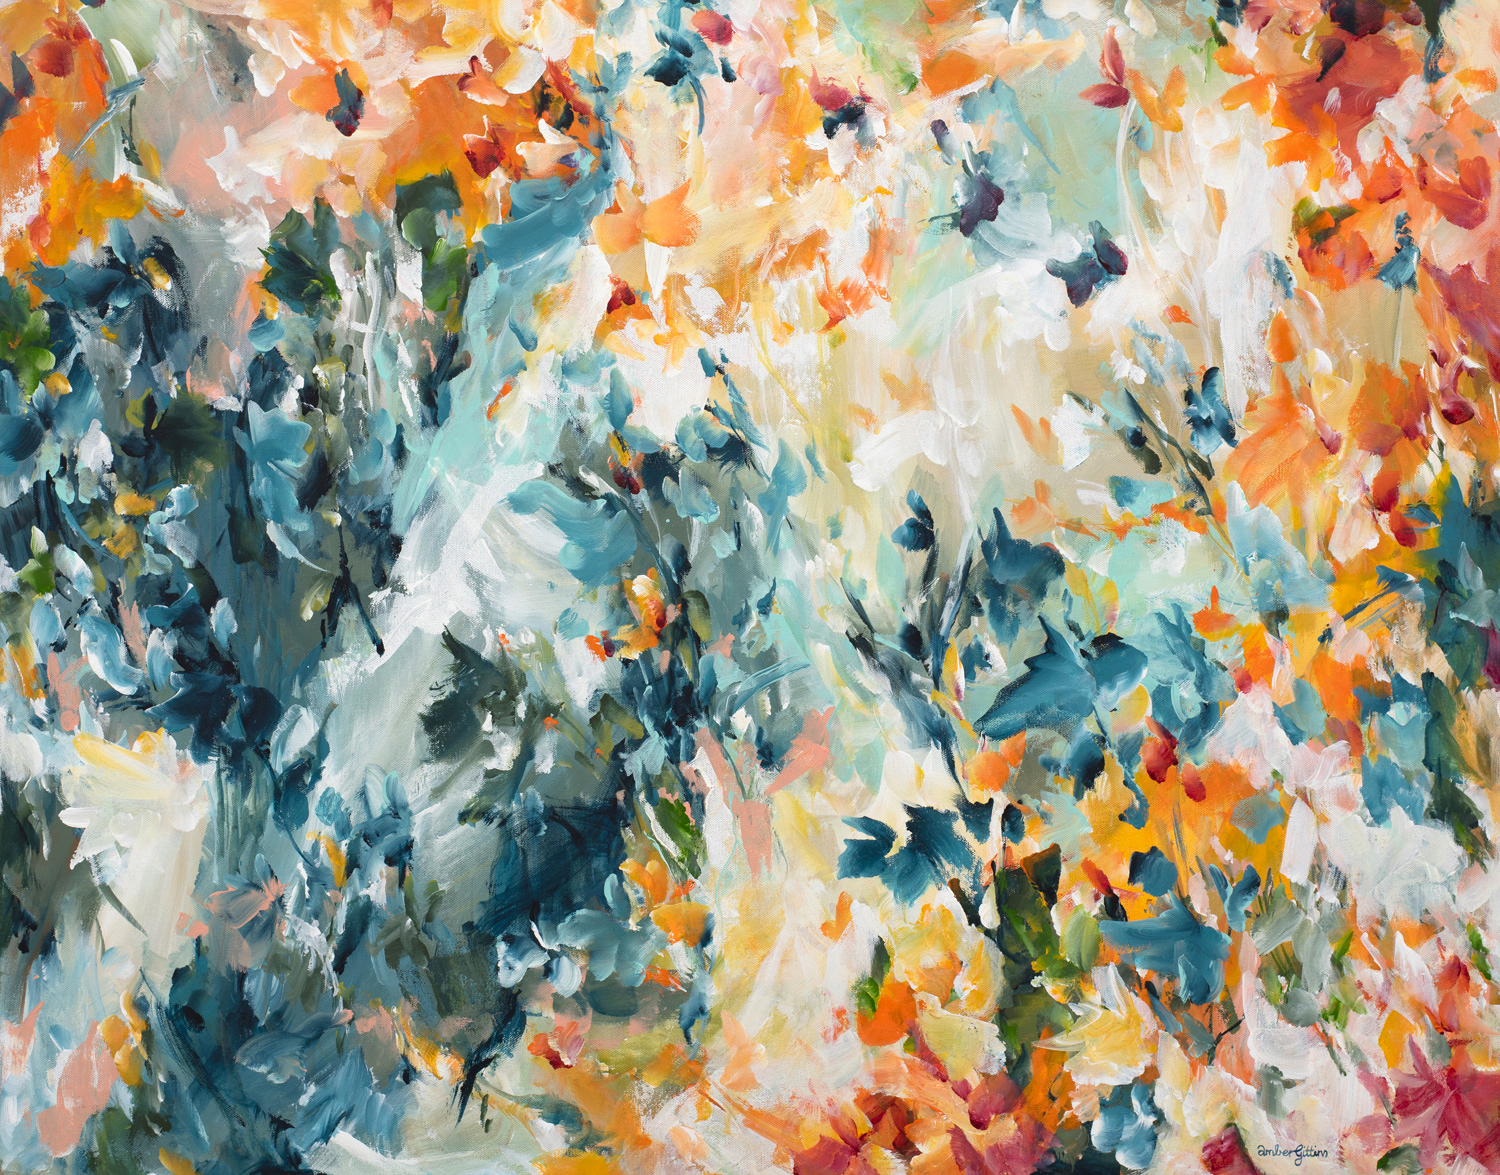 The Fires Came Colourful Abstract Painting By Amber Gittins